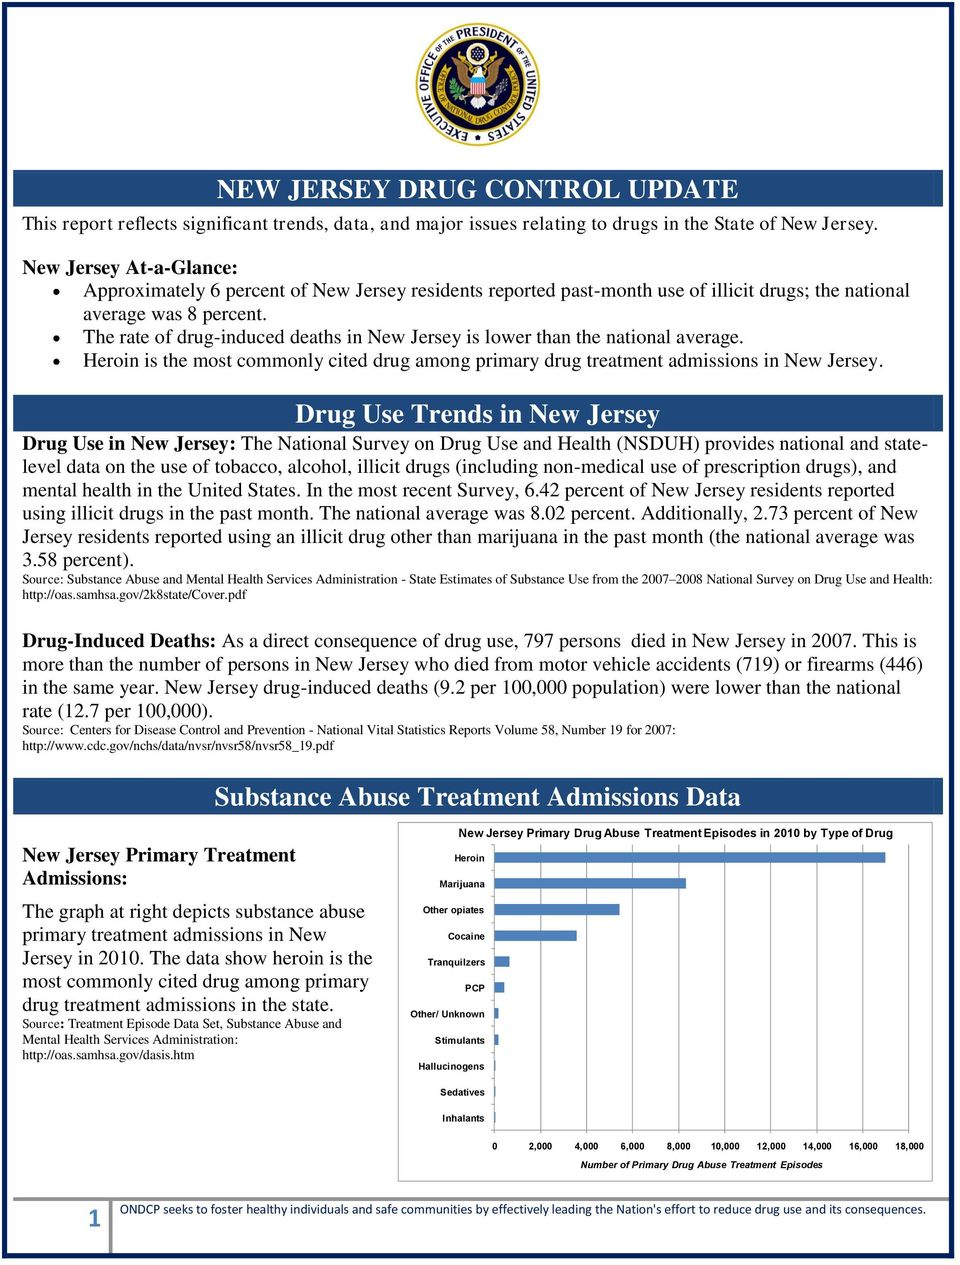 The rate of drug-induced deaths in New Jersey is lower than the national average. Heroin is the most commonly cited drug among primary drug treatment admissions in New Jersey.